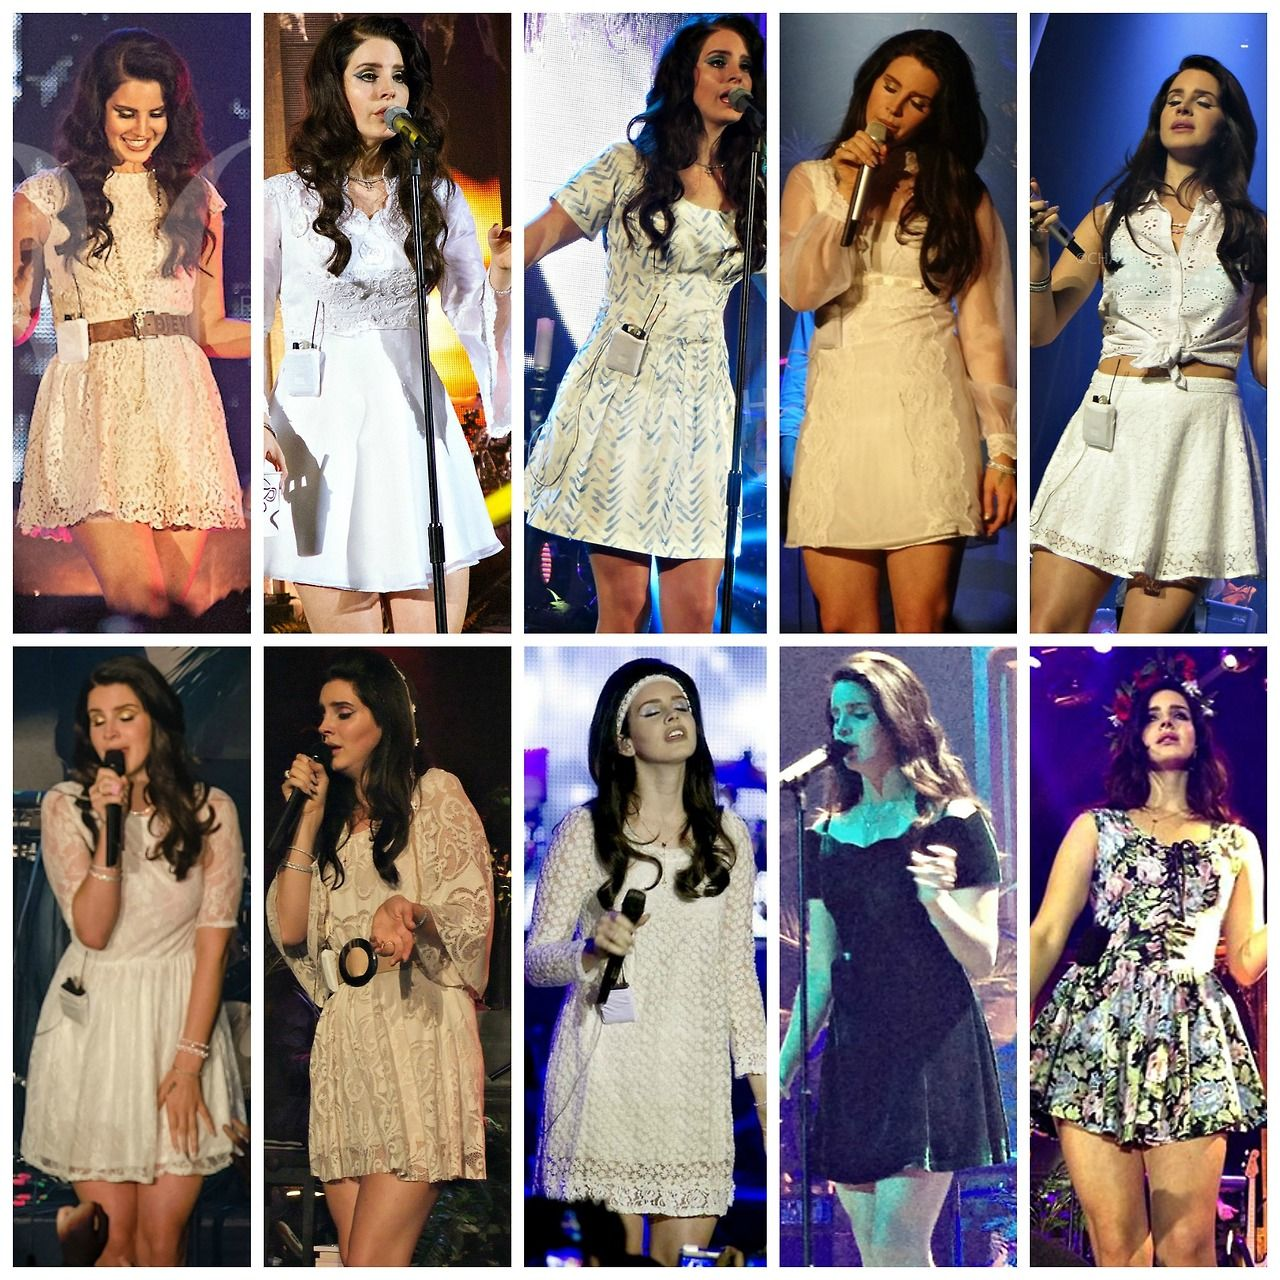 Lana Del Rey Performing Collage In White And Black Dresses Lana Del Rey Outfits Lana Del Rey Pretty Outfits